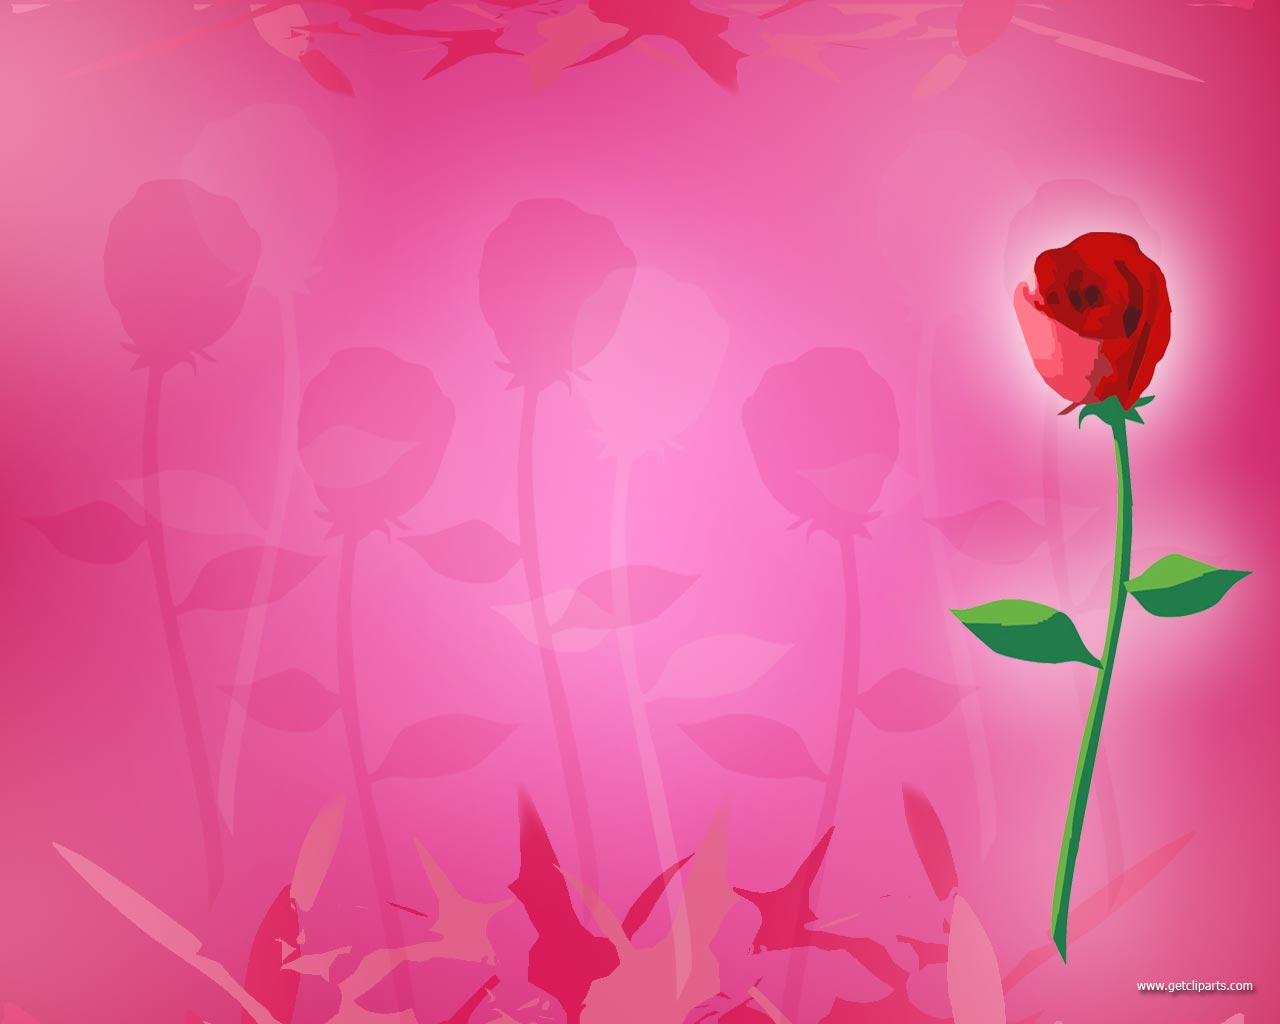 Hello Kitty Pink Cute Wallpaper Bergerak 10 Free Rose Backgrounds That Are Great For Valentines Day